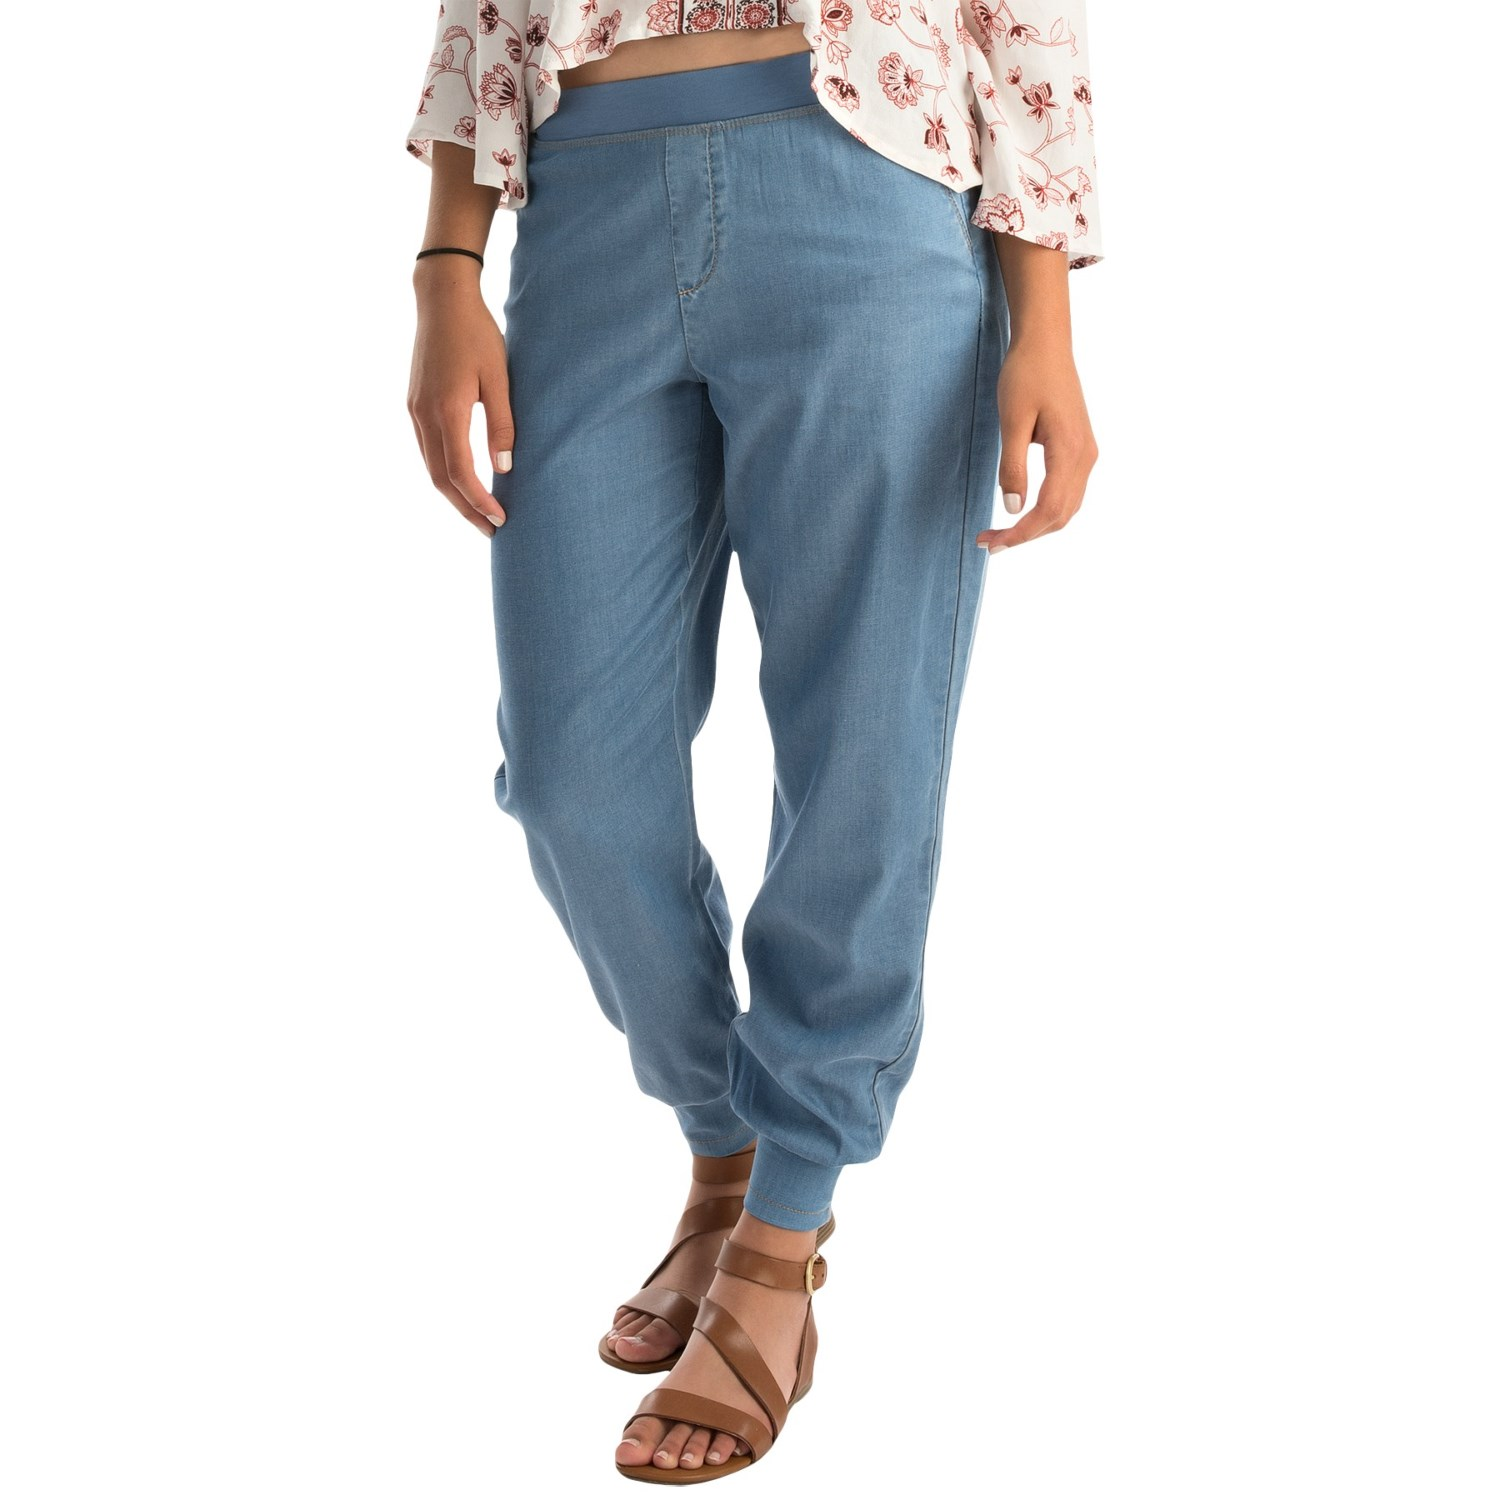 Nydj darla chambray track pants for women for Chambray jeans